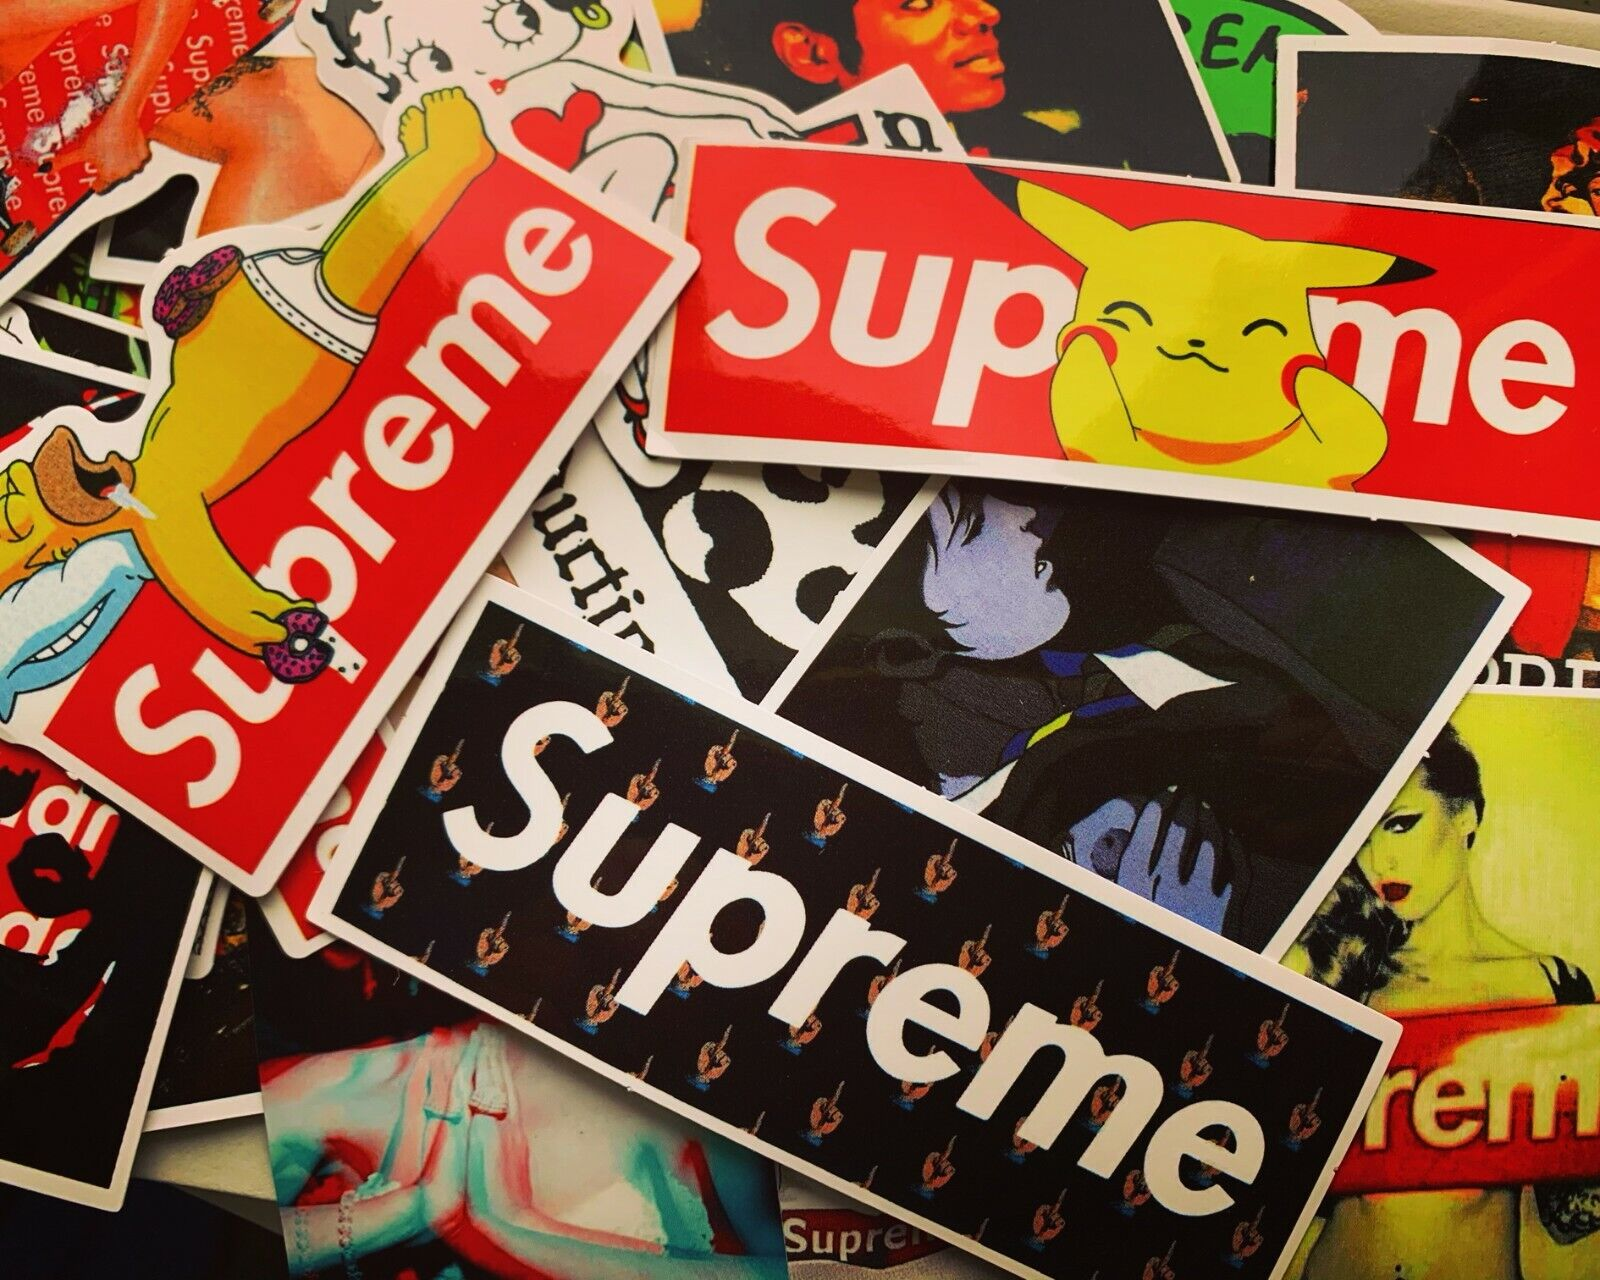 Home Decoration - 50 Supreme Hypebeast Stickers for Hydro Flasks, Laptops, Skateboards - USA STOCK